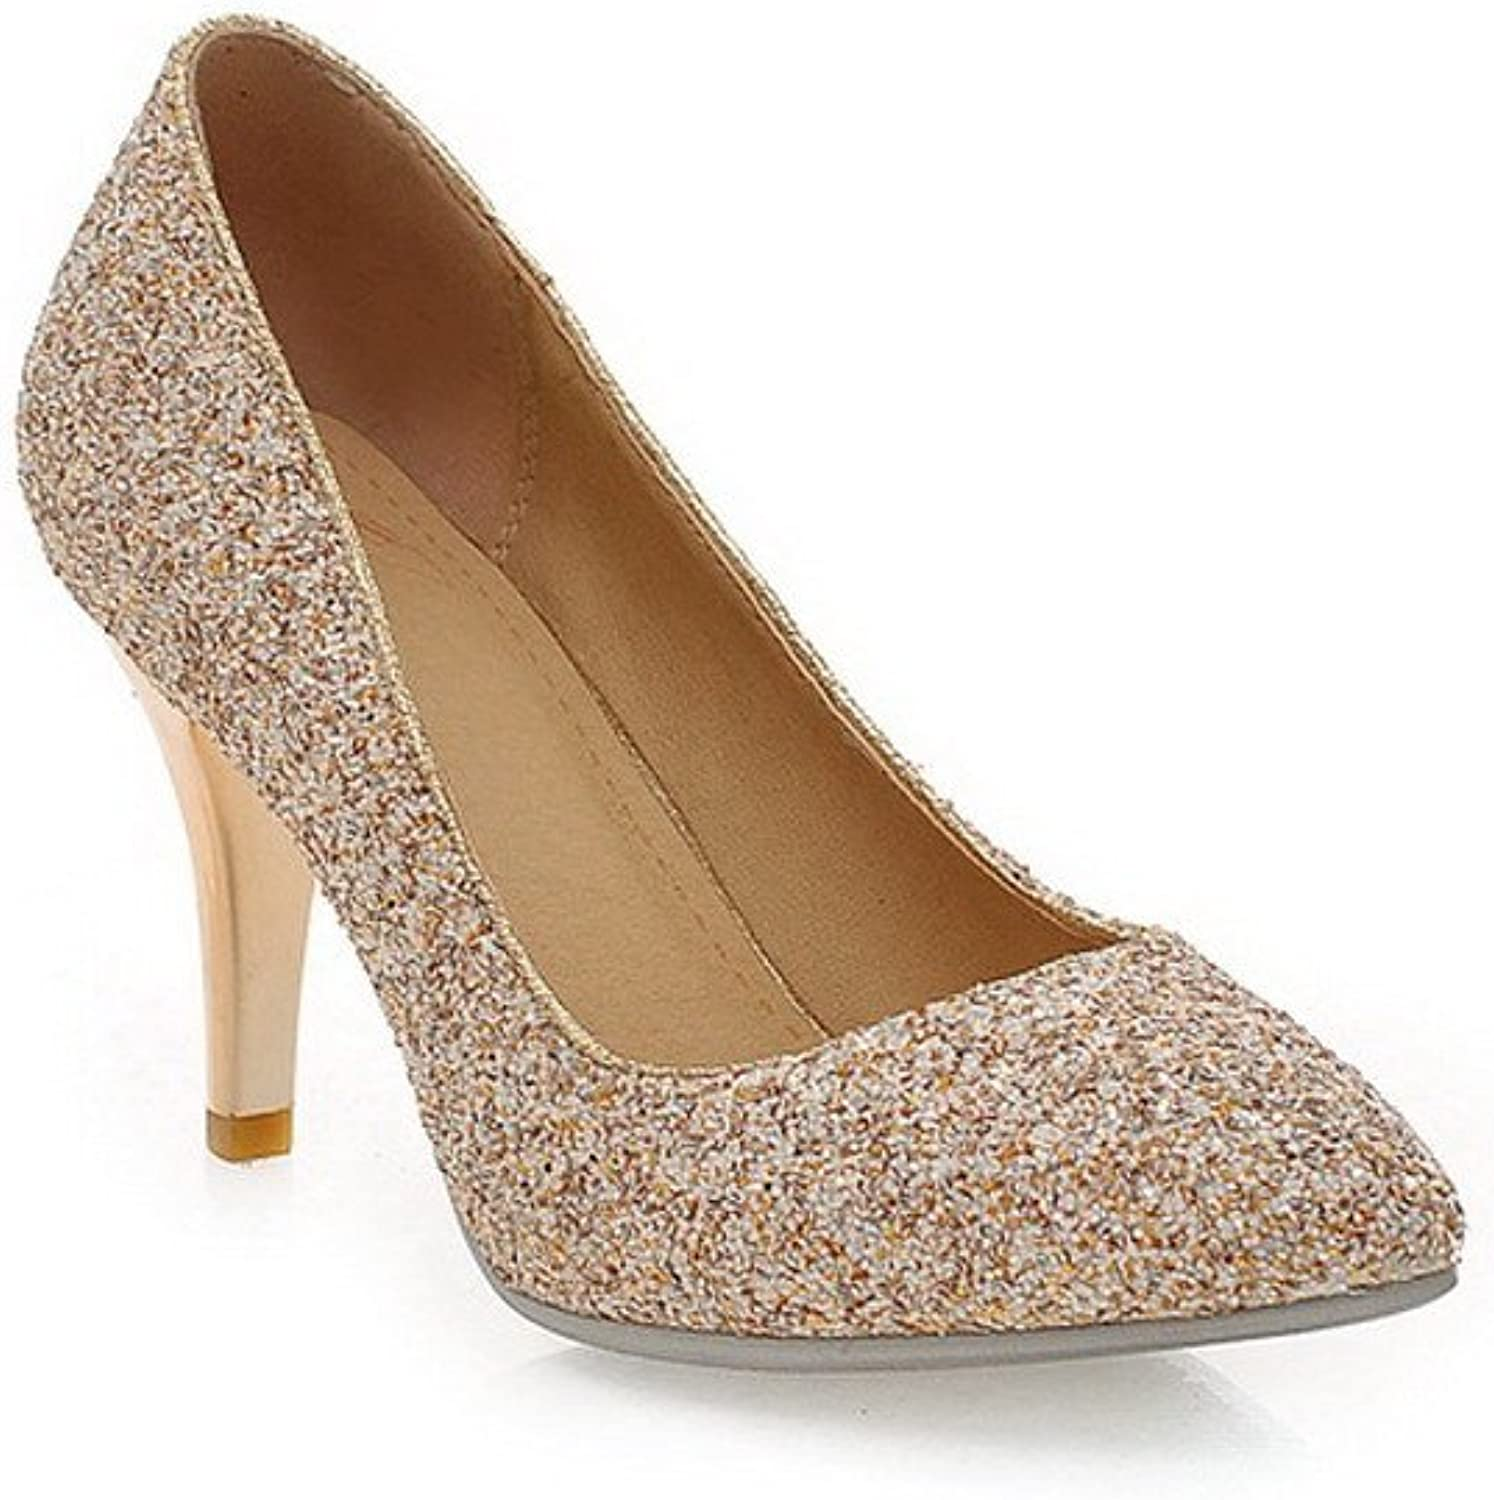 WeiPoot Womens Closed Po2015ted Toe High Heel Frosted PU Solid Pumps with Sequ2015, gold, 9.5 B(M) US